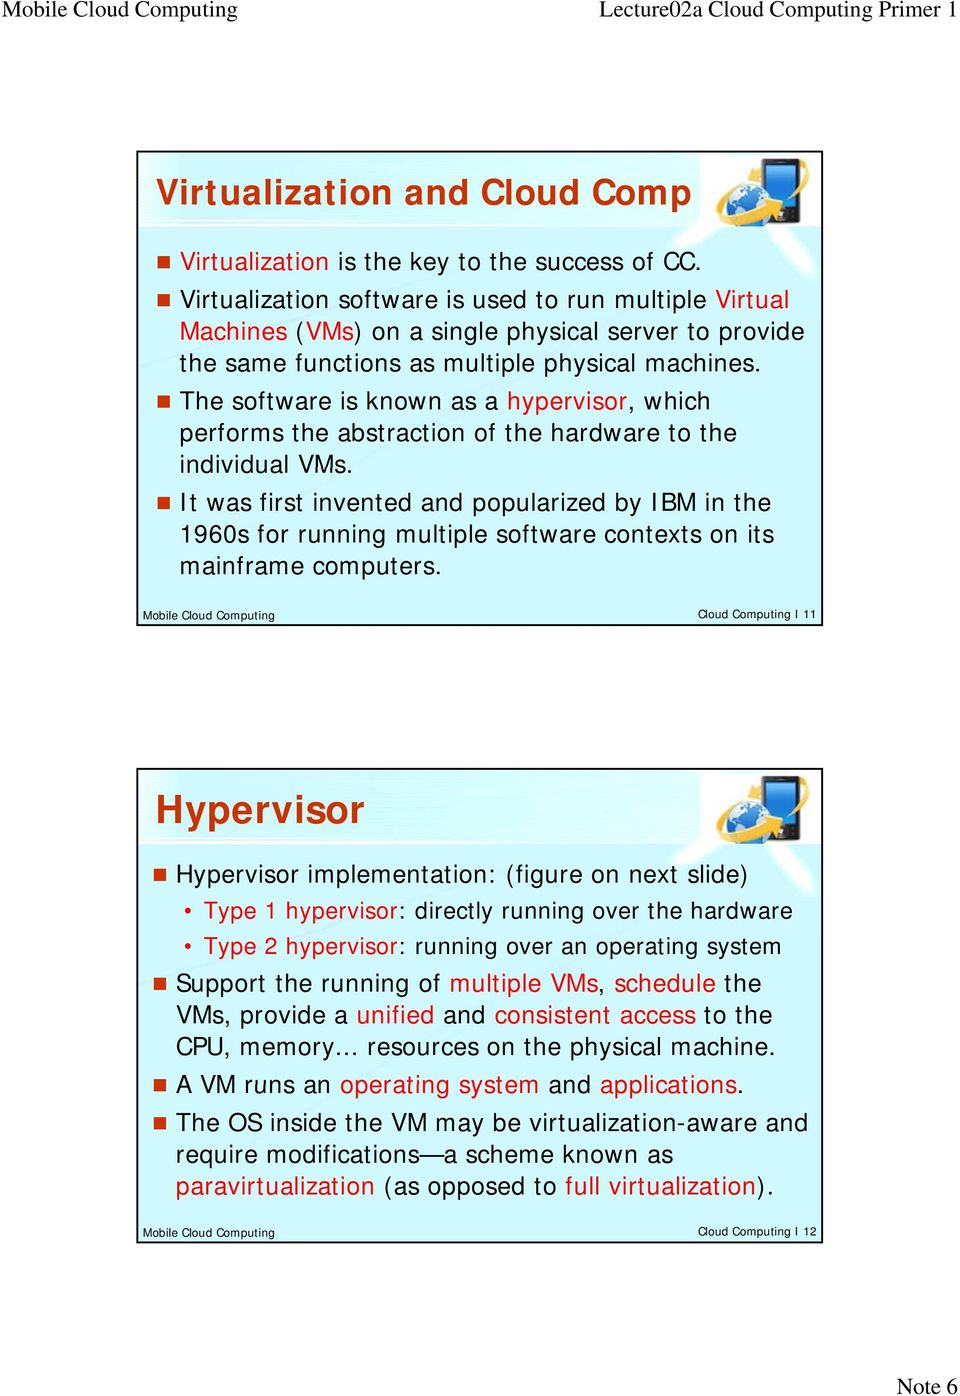 The software is known as a hypervisor, which performs the abstraction of the hardware to the individual VMs.